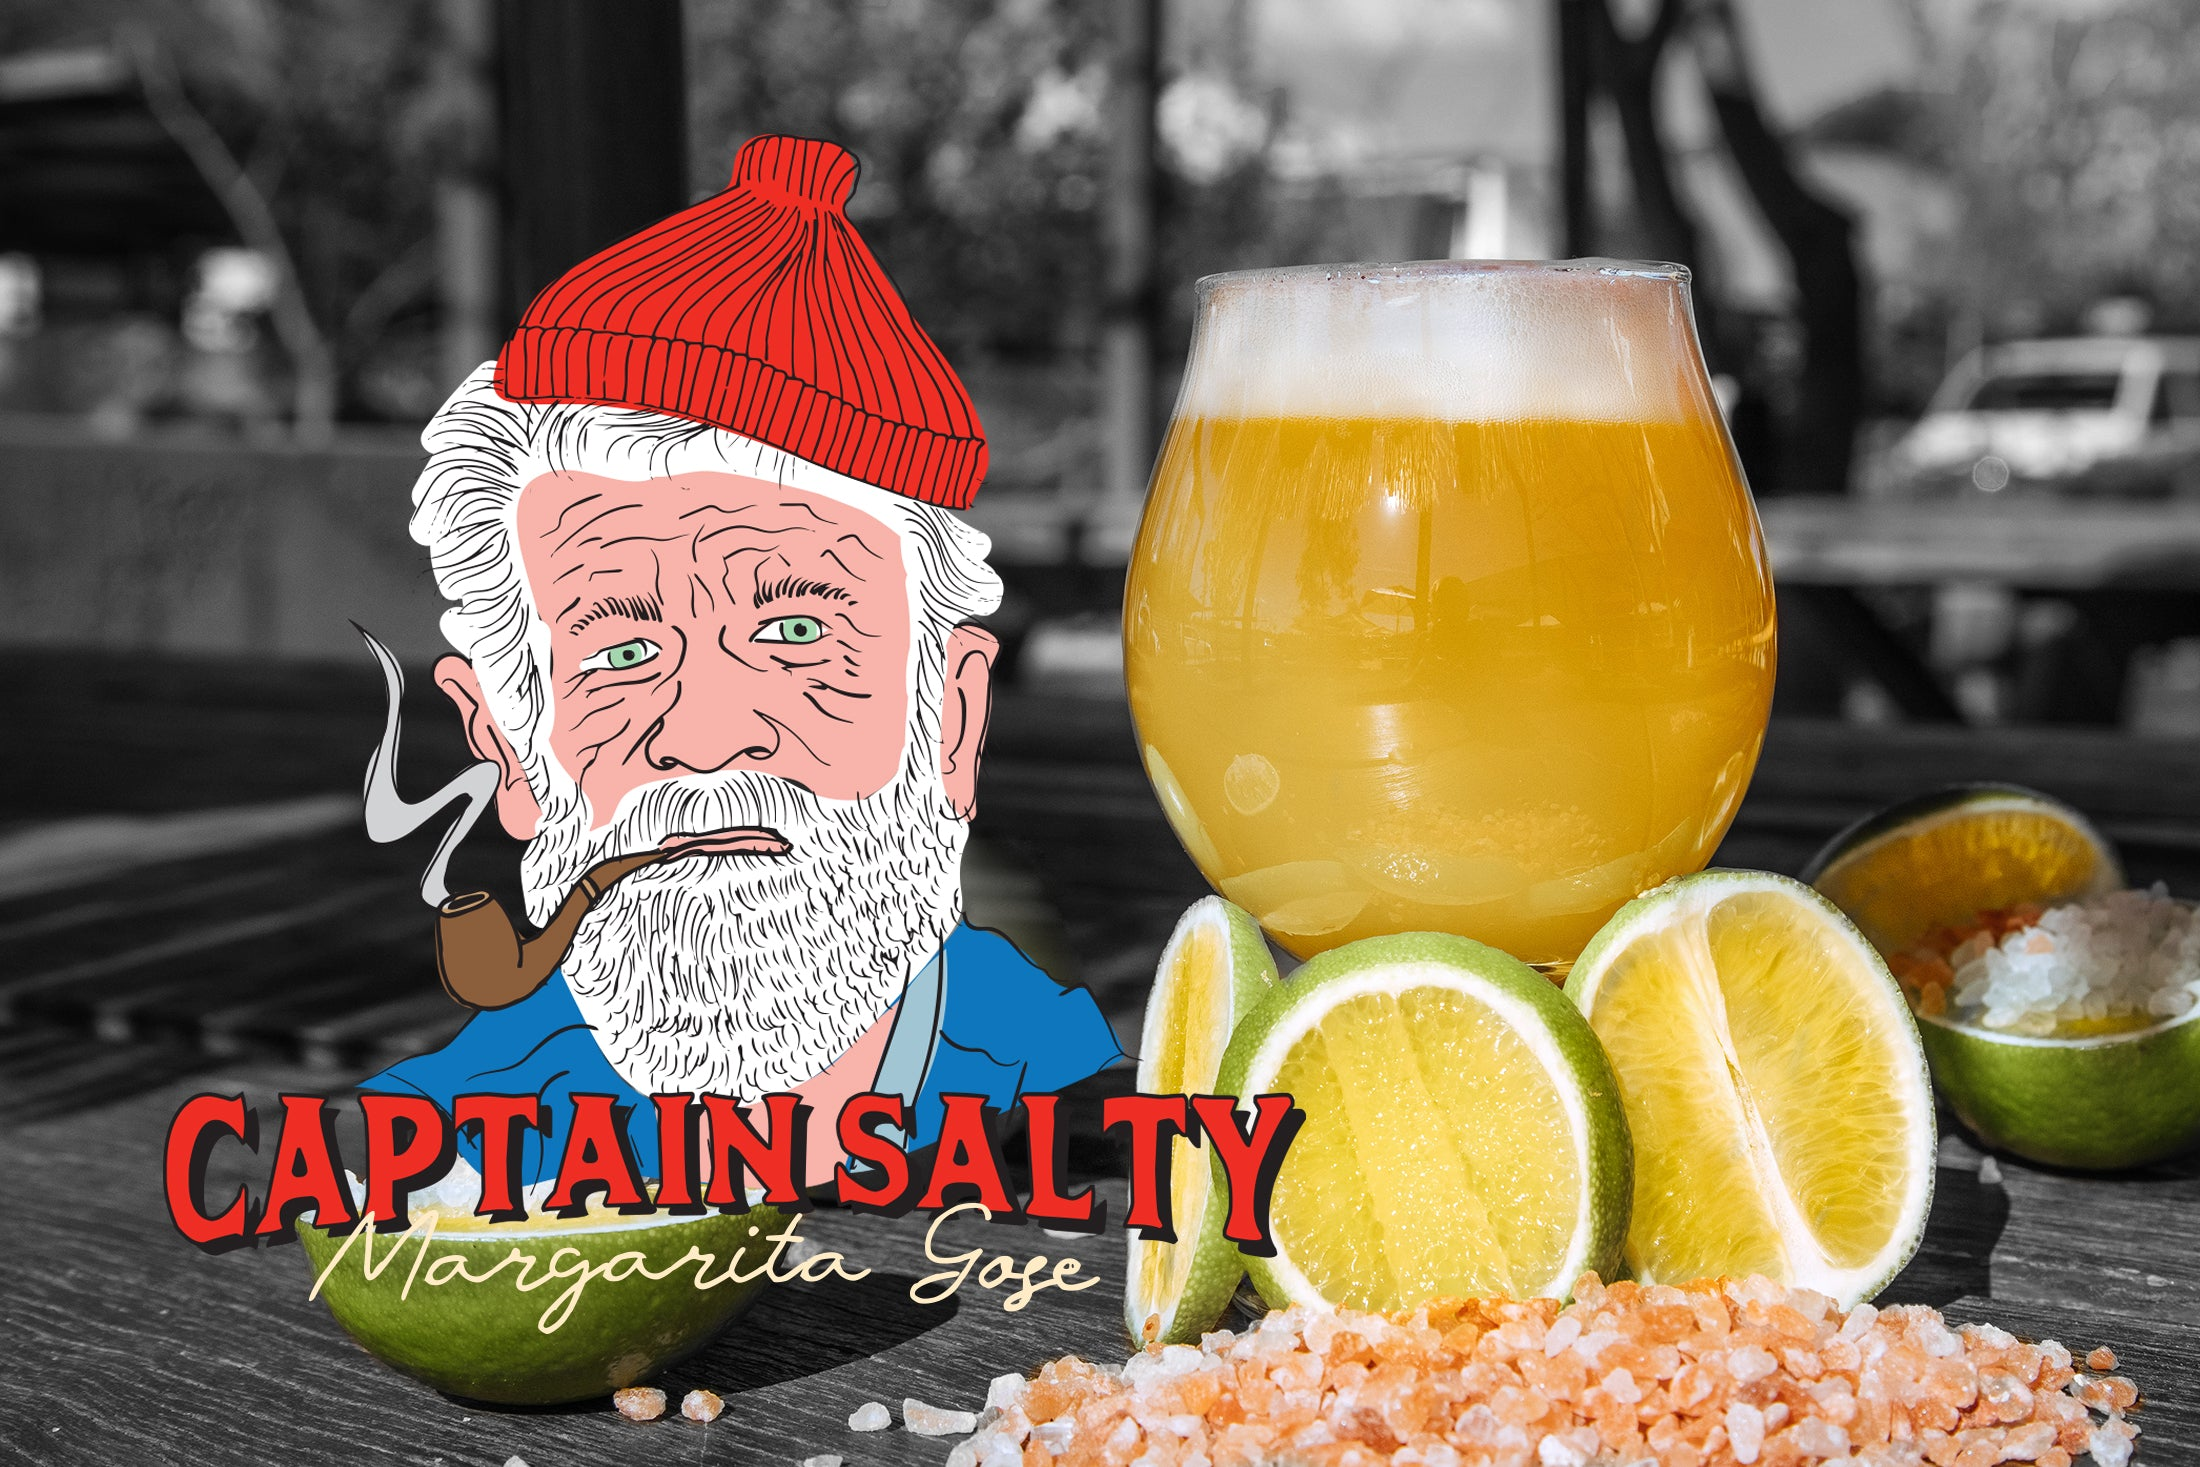 Our latest Special Release 'Captain Salty Margarita Gose' now pouring at the Taproom!